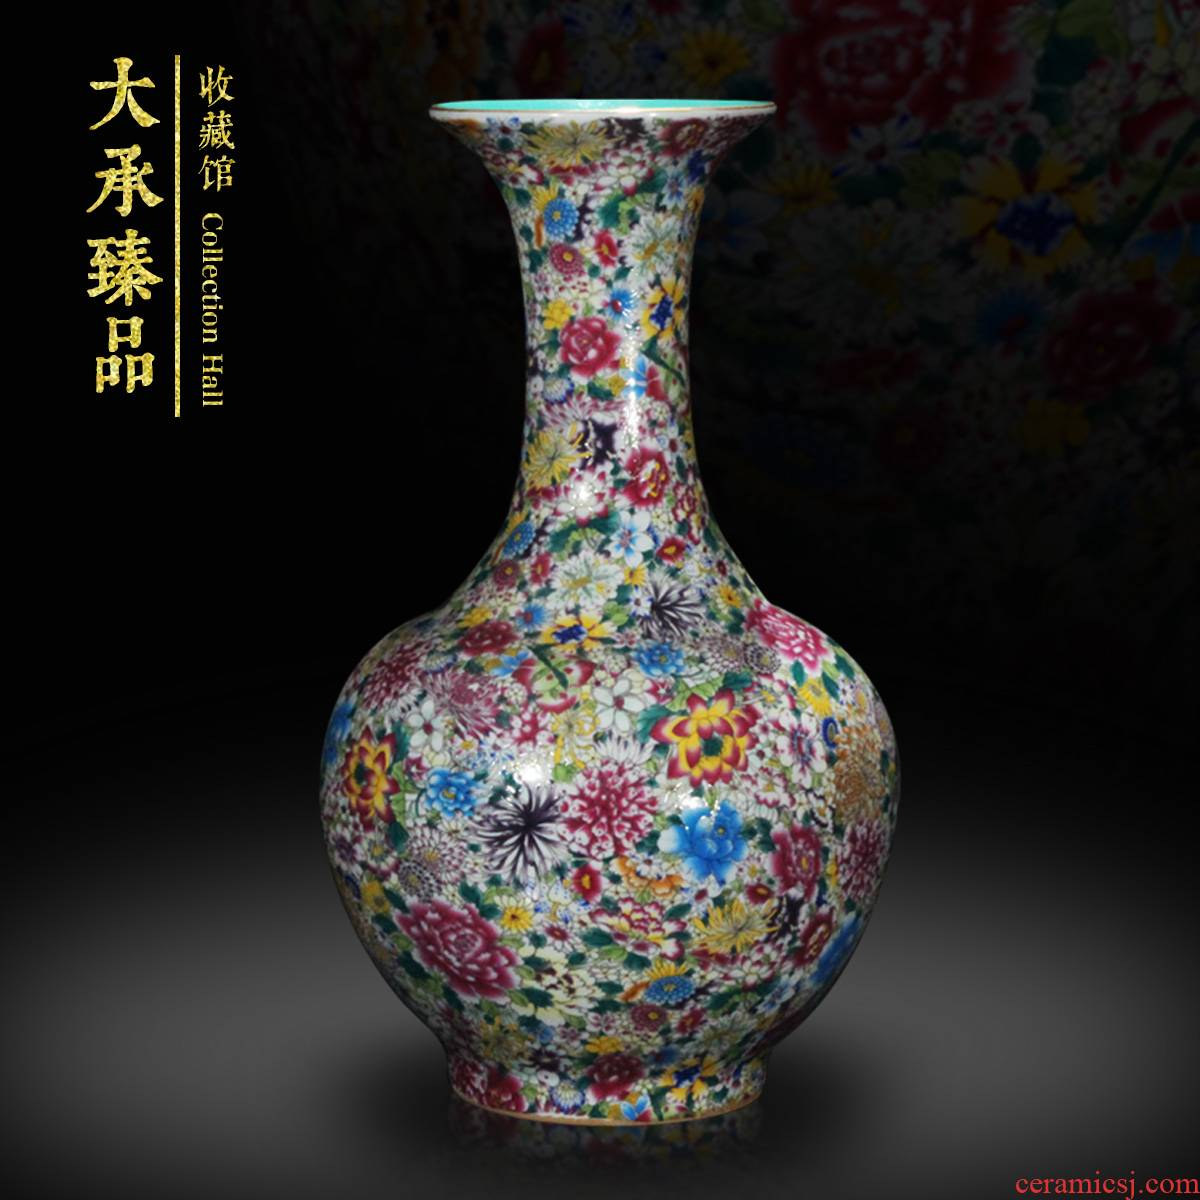 Antique Chinese jingdezhen ceramics vase powder enamel enamel vase decoration home decoration handicraft furnishing articles